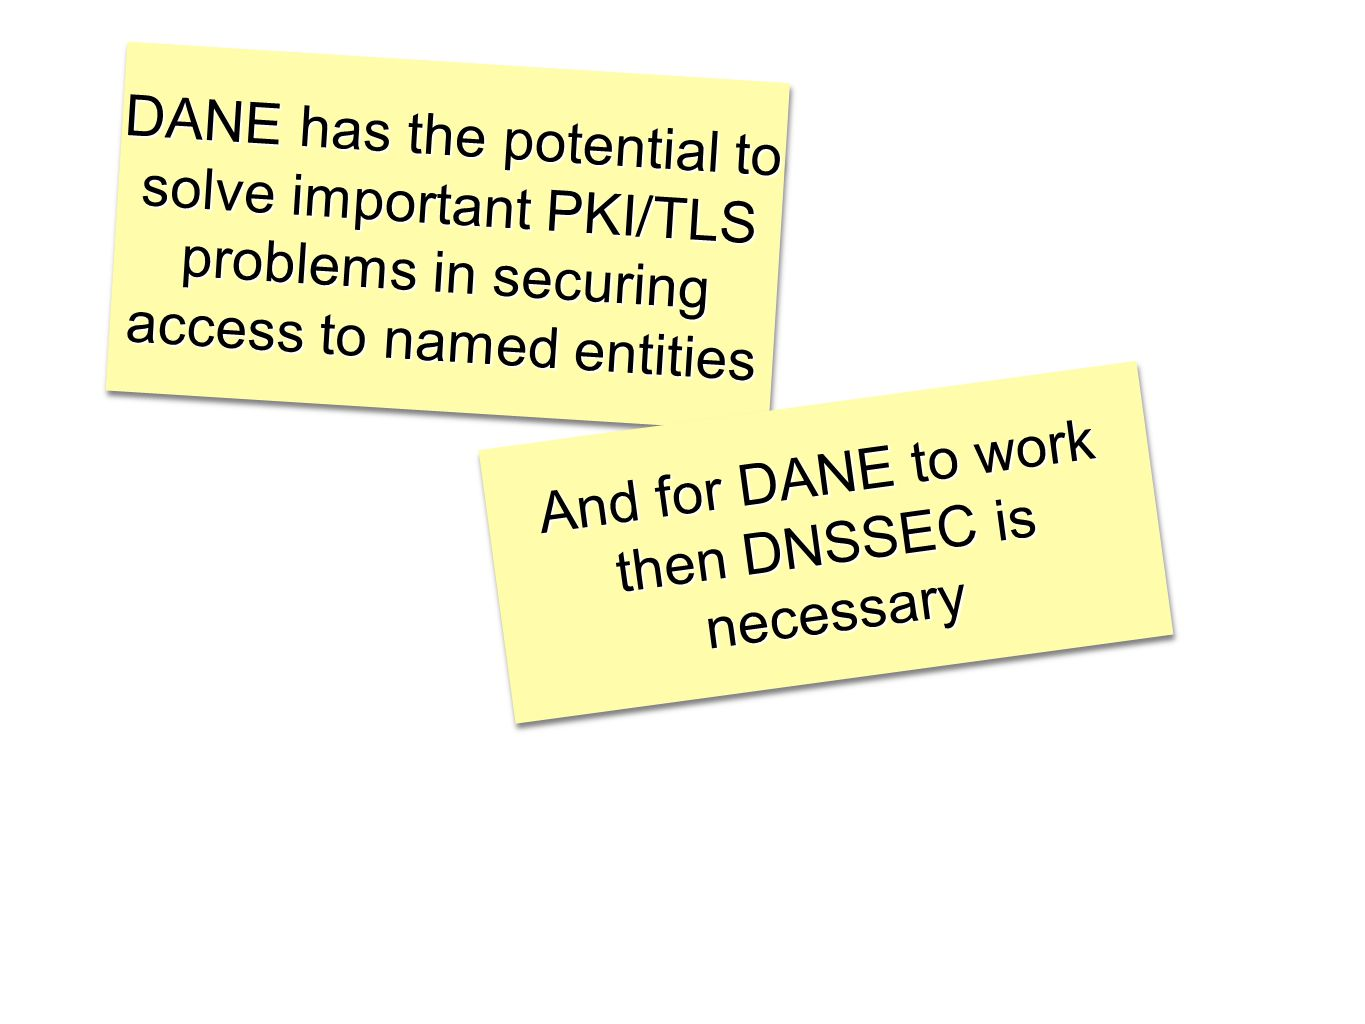 DANE has the potential to solve important PKI/TLS problems in securing access to named entities And for DANE to work then DNSSEC is necessary